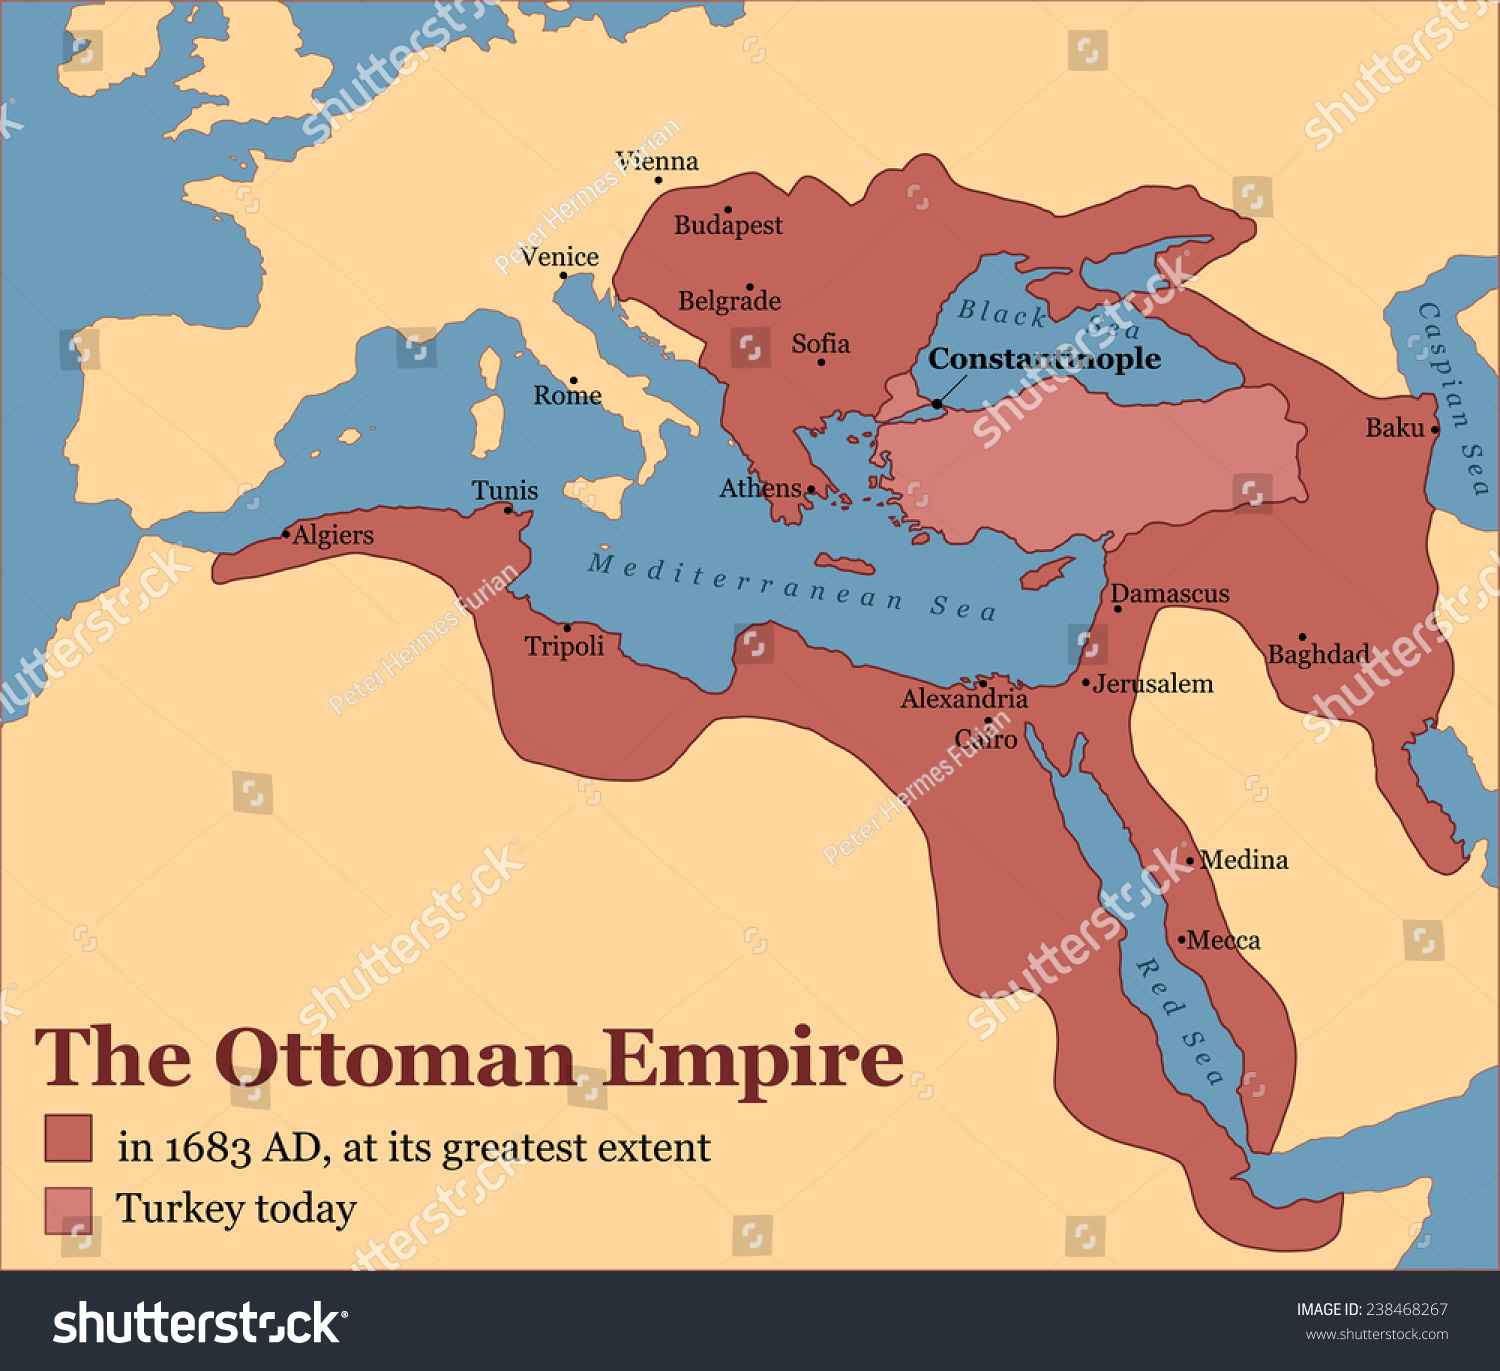 Ottoman Empire Today Istanbul During The Ottoman Empire